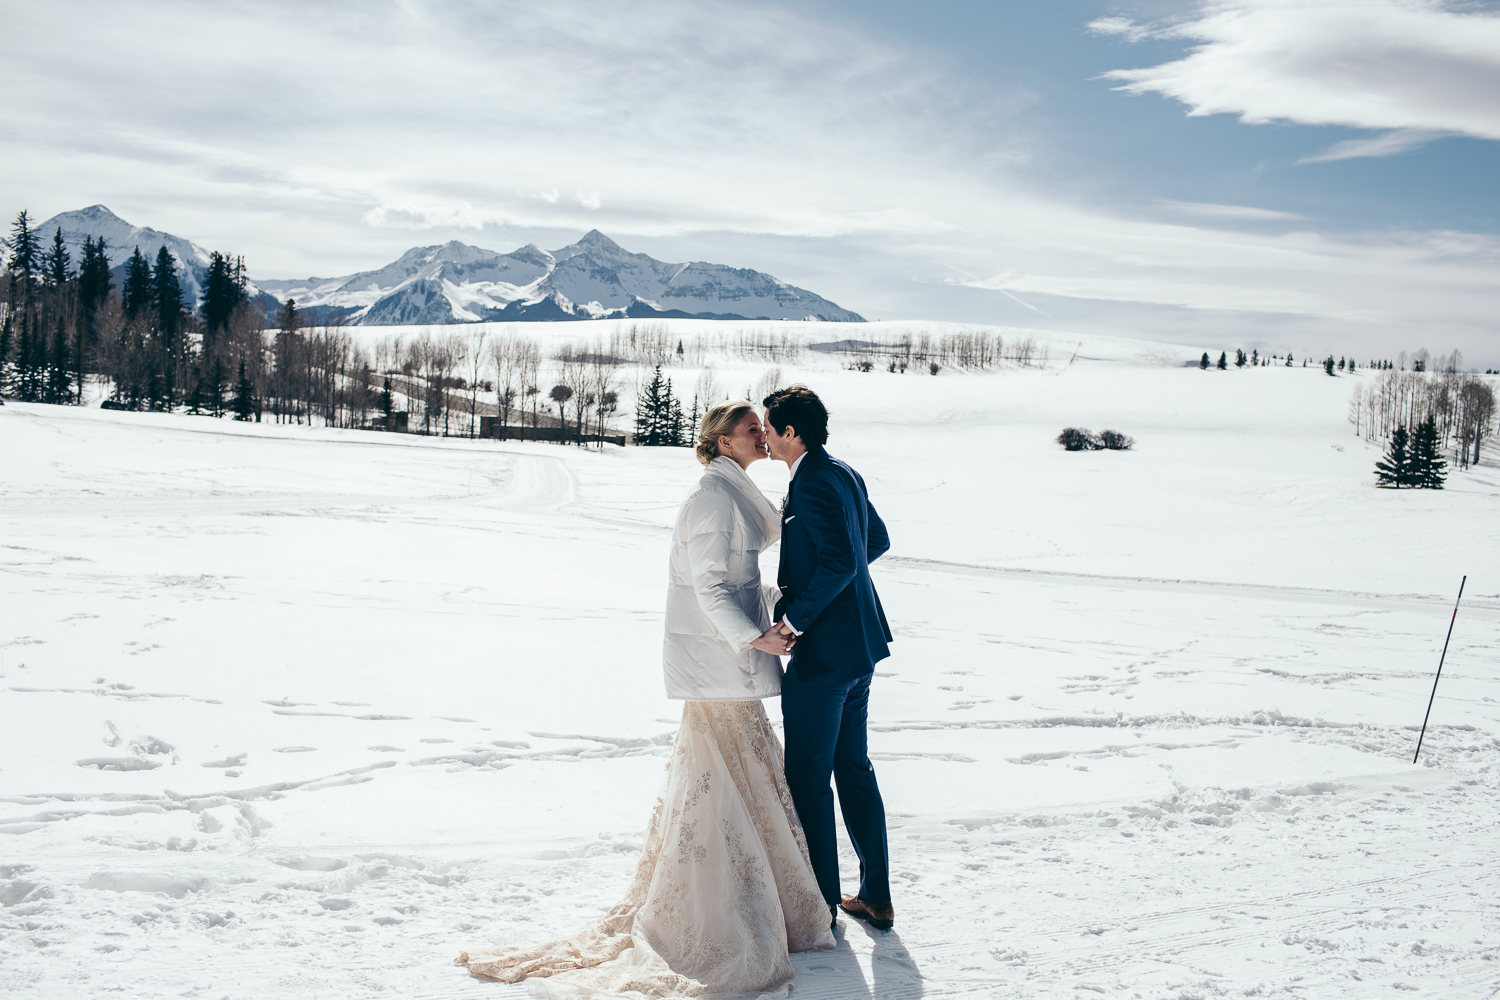 Abie Livesay Photography - San Sophia Wedding - Telluride Wedding Photographer - Dykema Braun Wedding-255.jpg